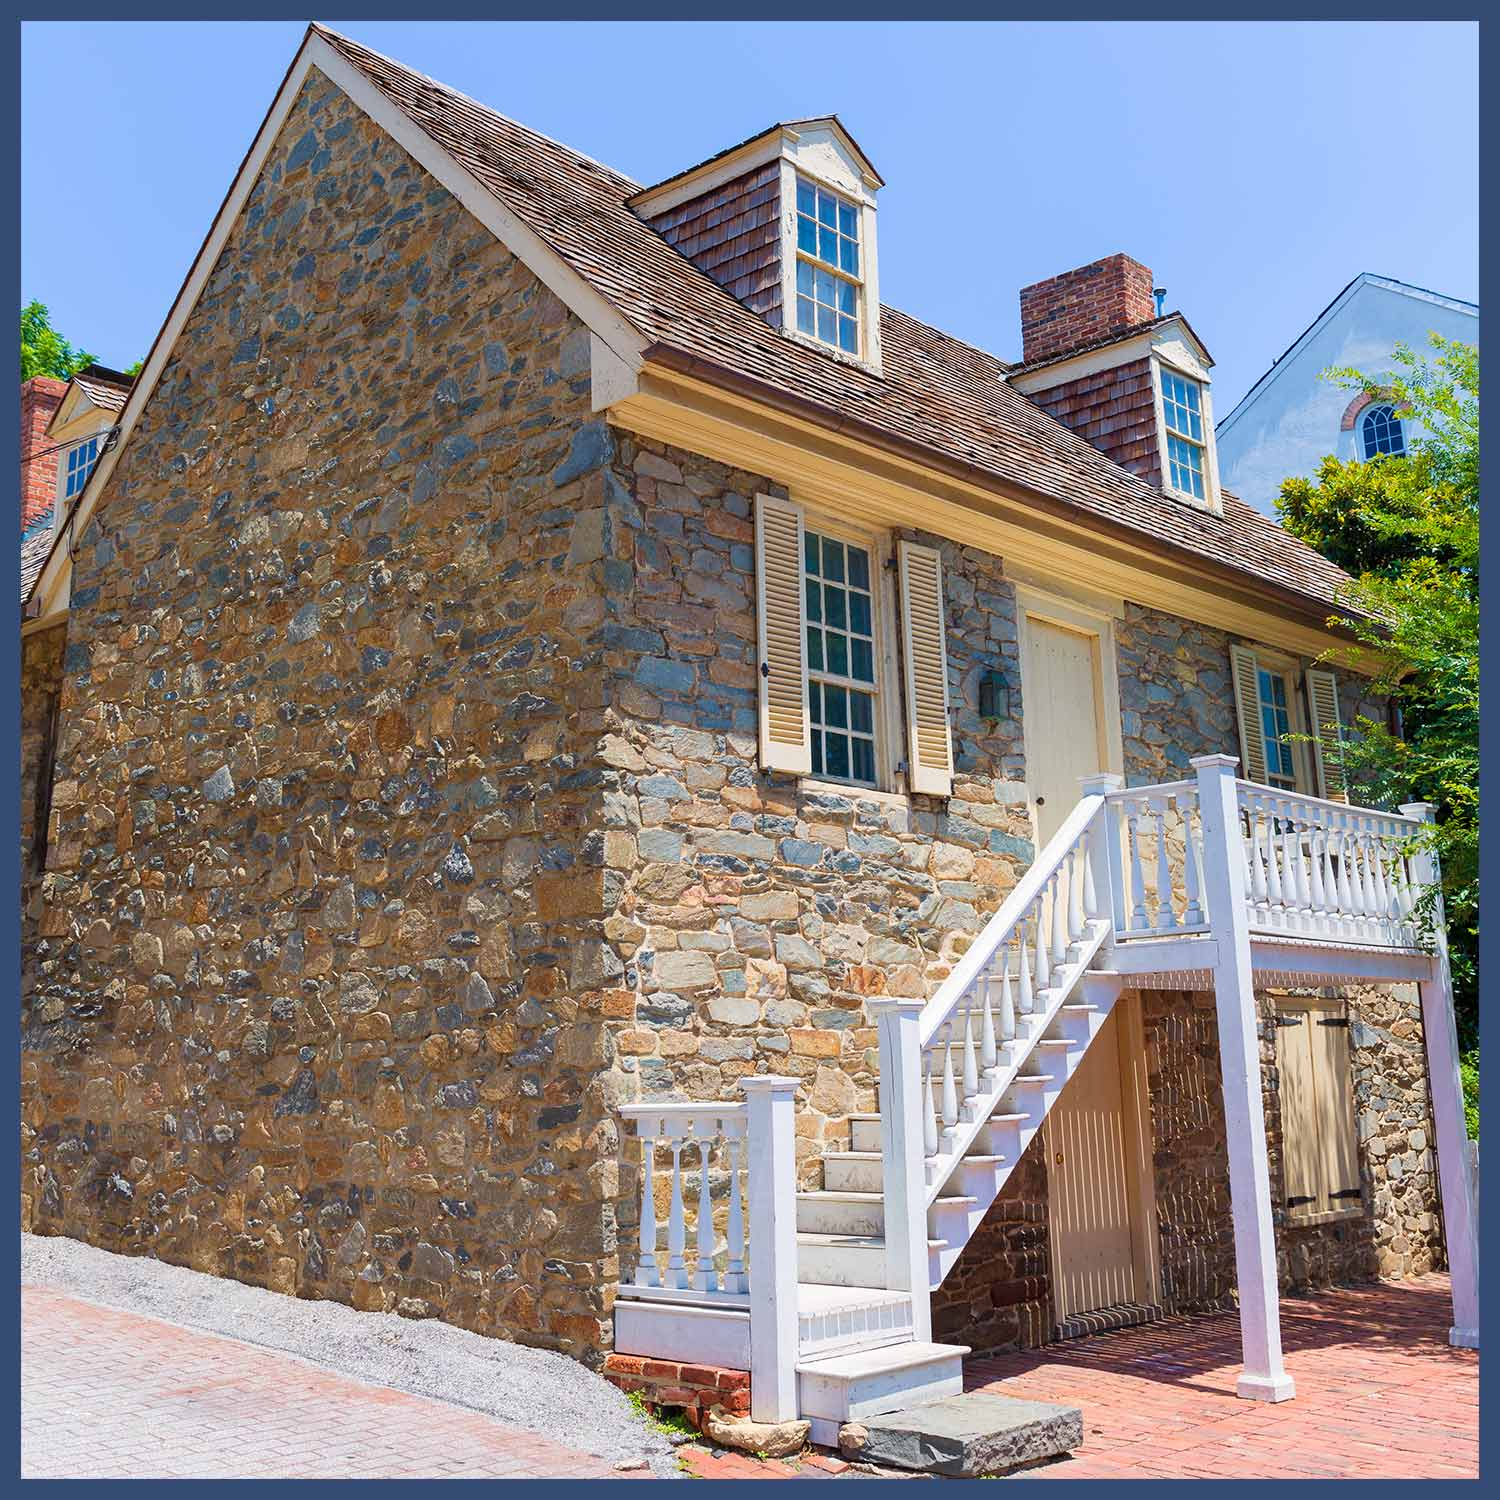 The Old Stone House in District of Columbia